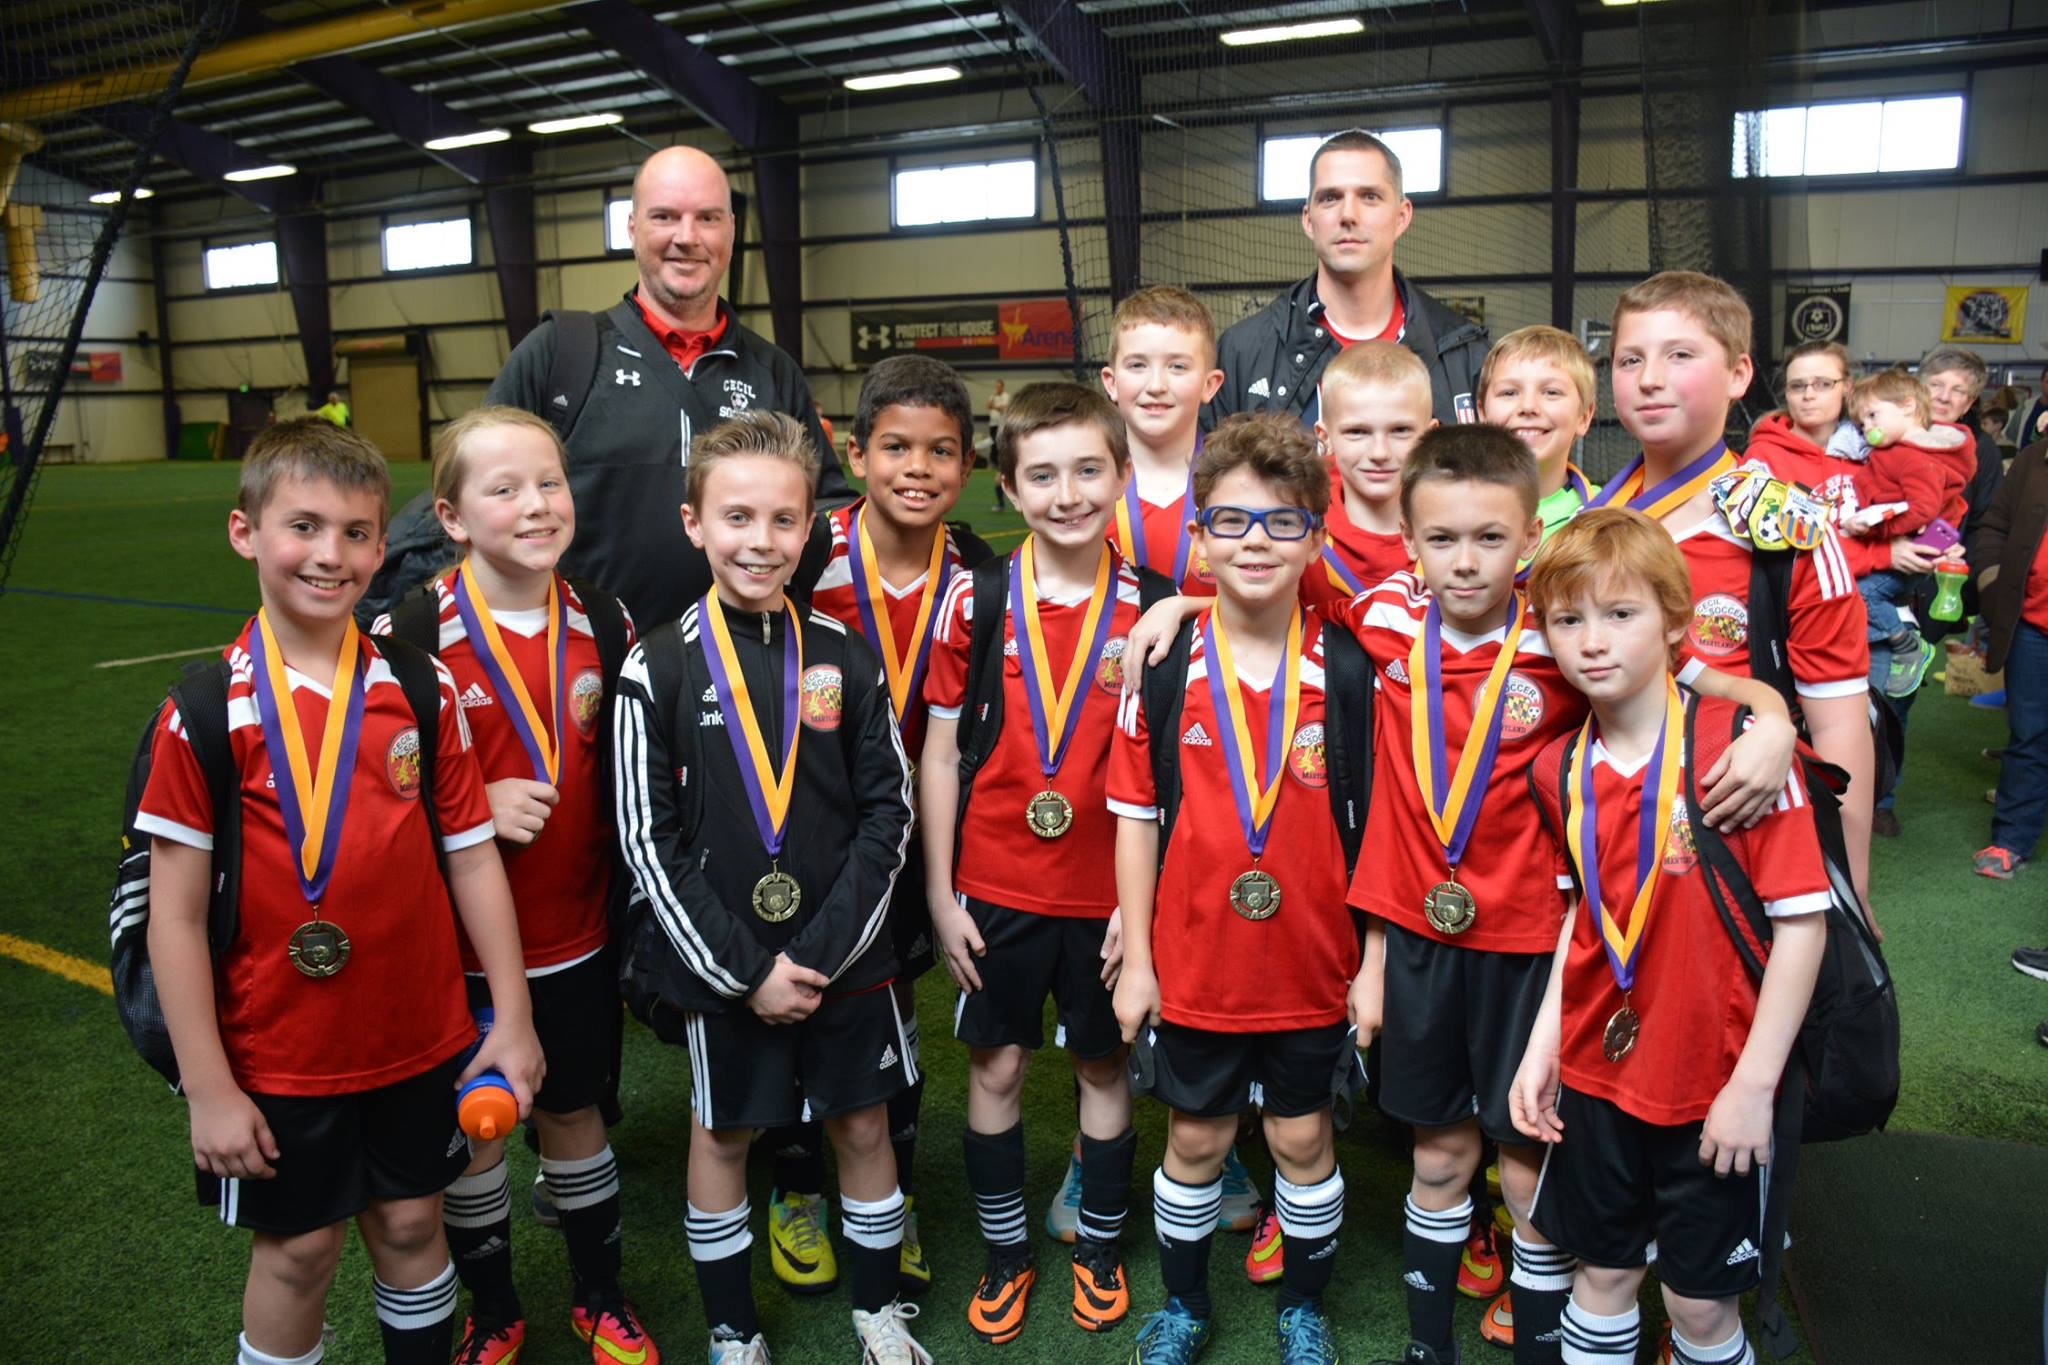 U10 Cecil Spirit Indoor Arena Club Champs!